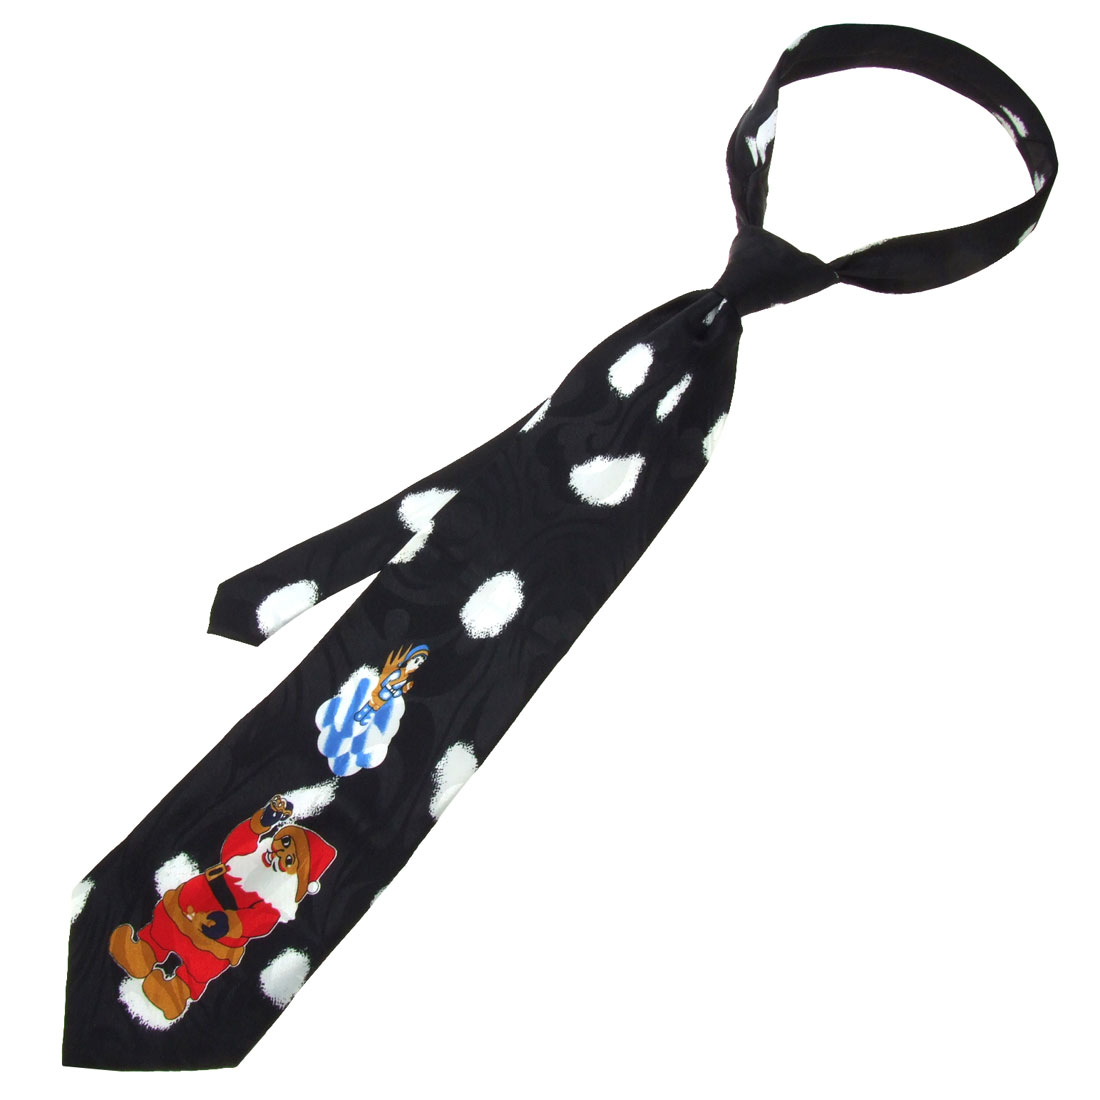 Xmas Santa Claus Hand Made Black Necktie Men's Neck Tie Strap